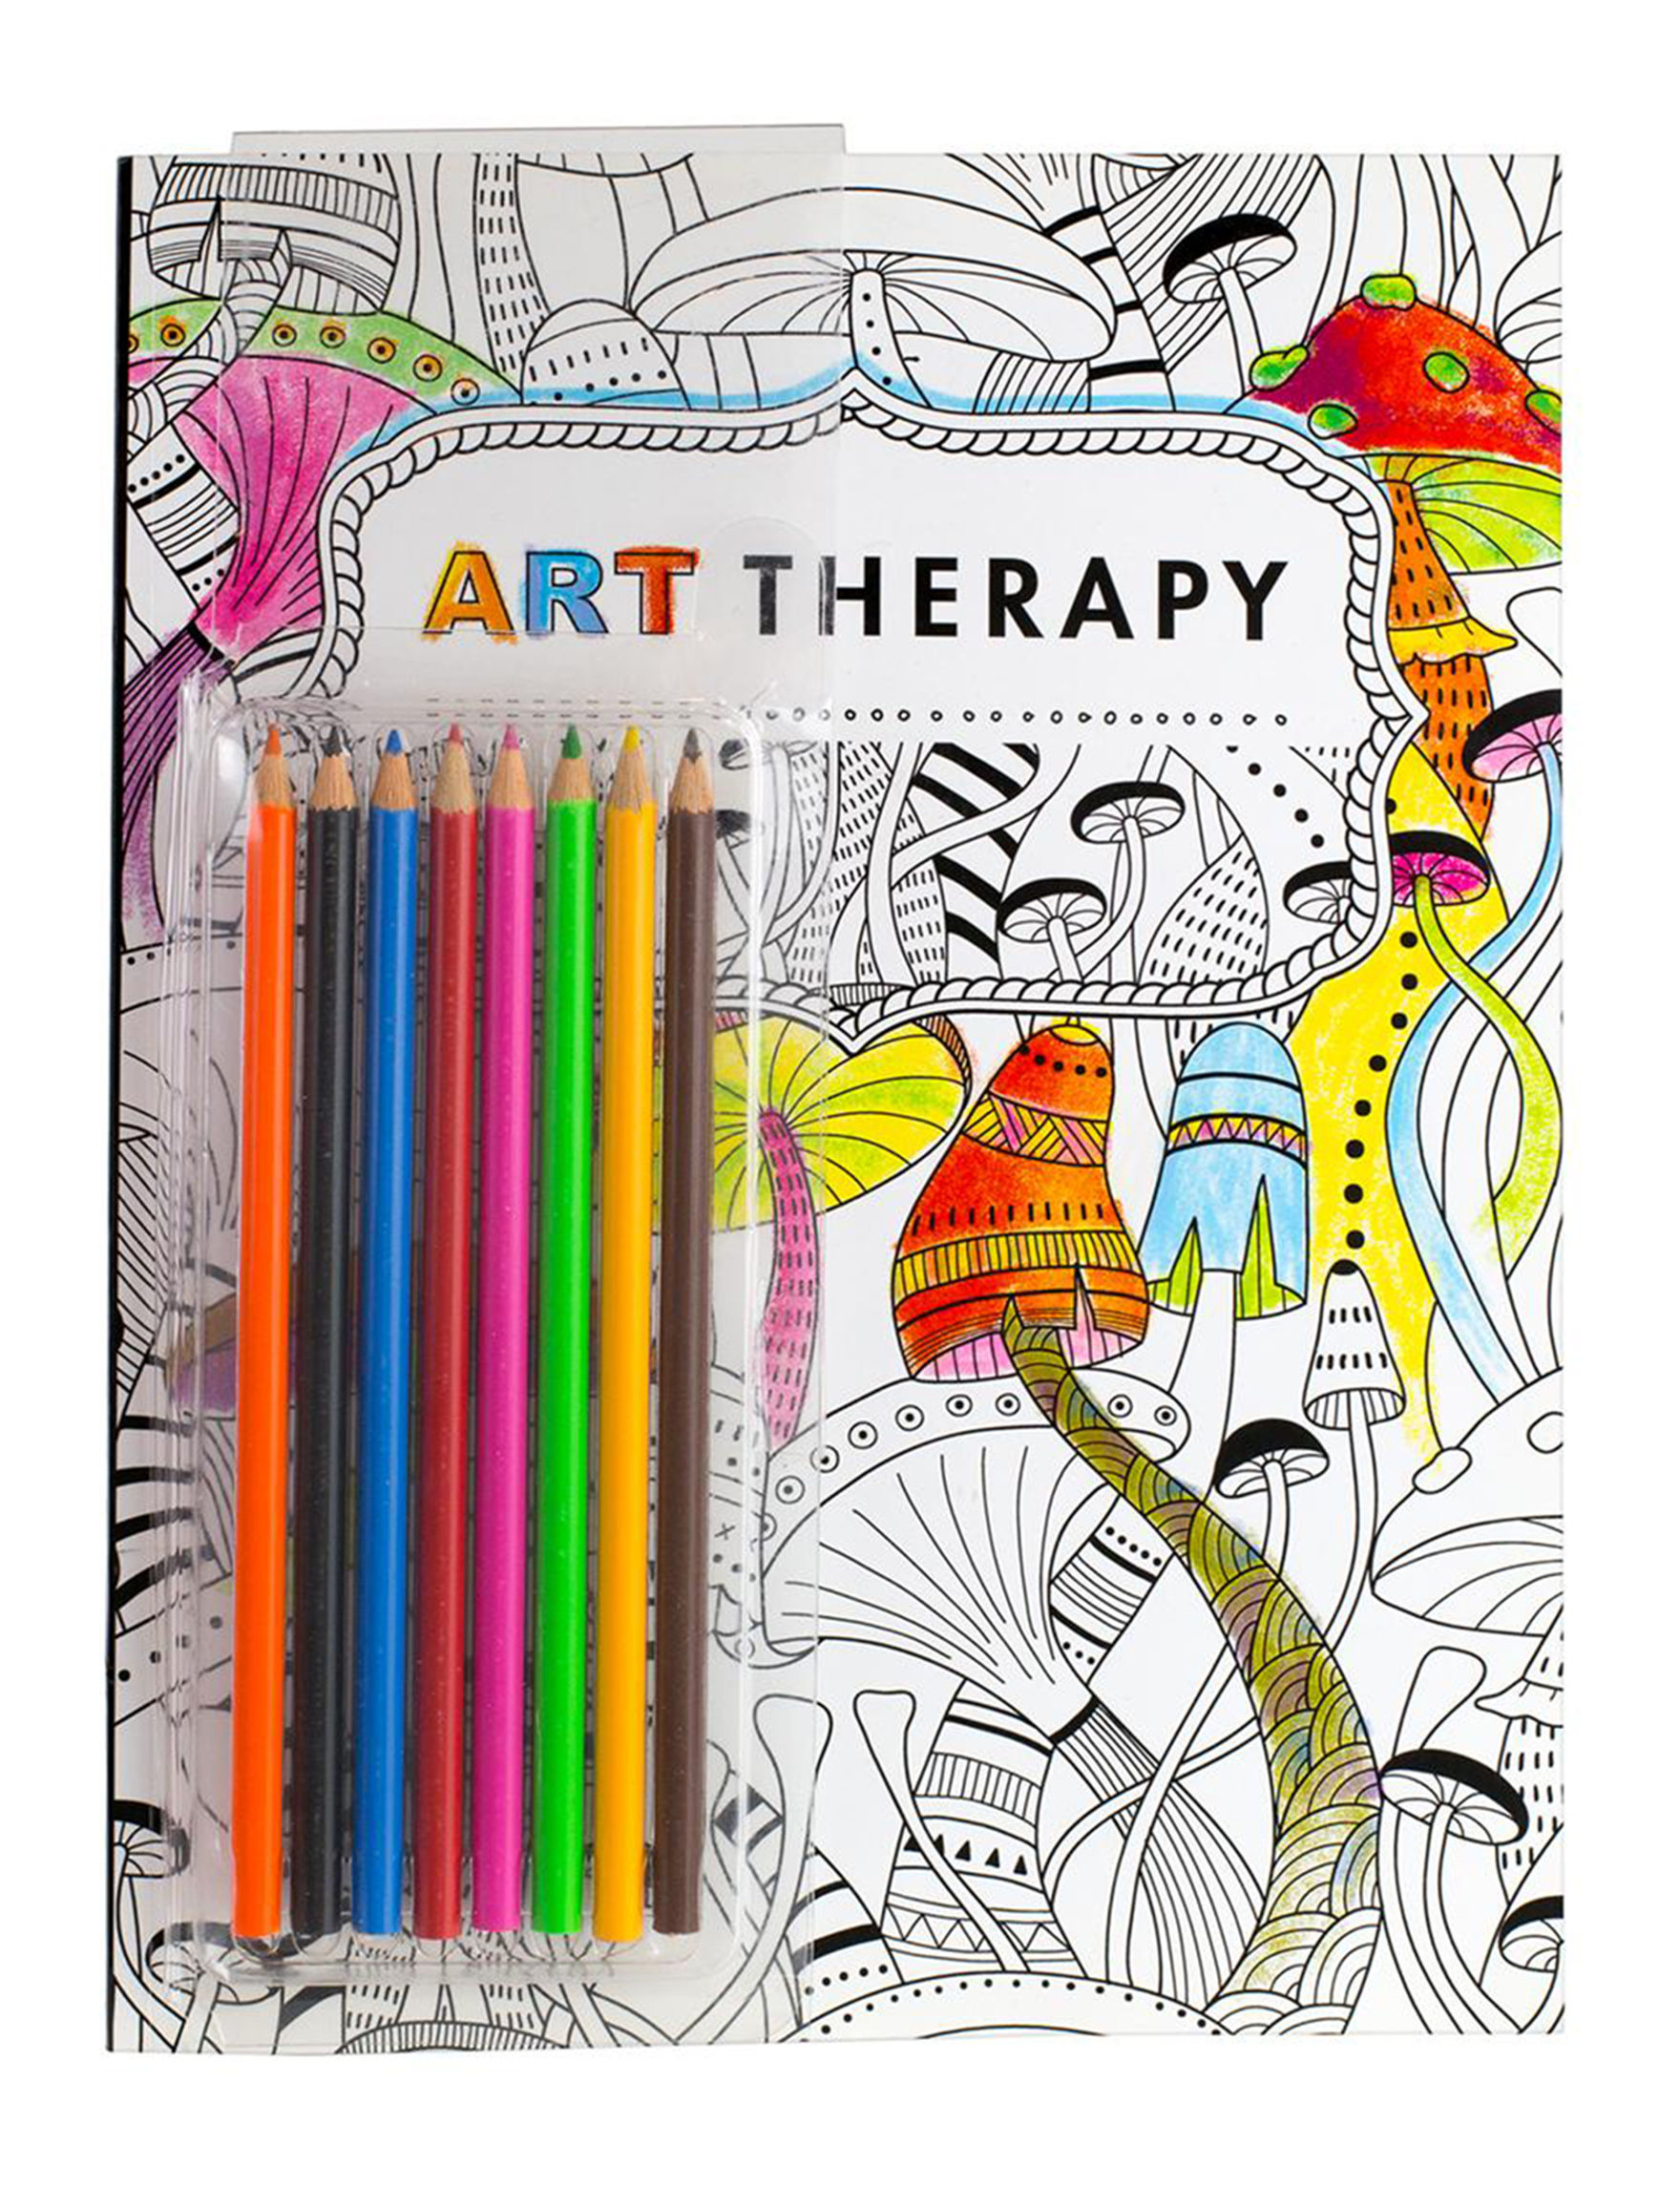 Art therapy coloring book and pencils - Art Therapy Coloring Book Pencils Set